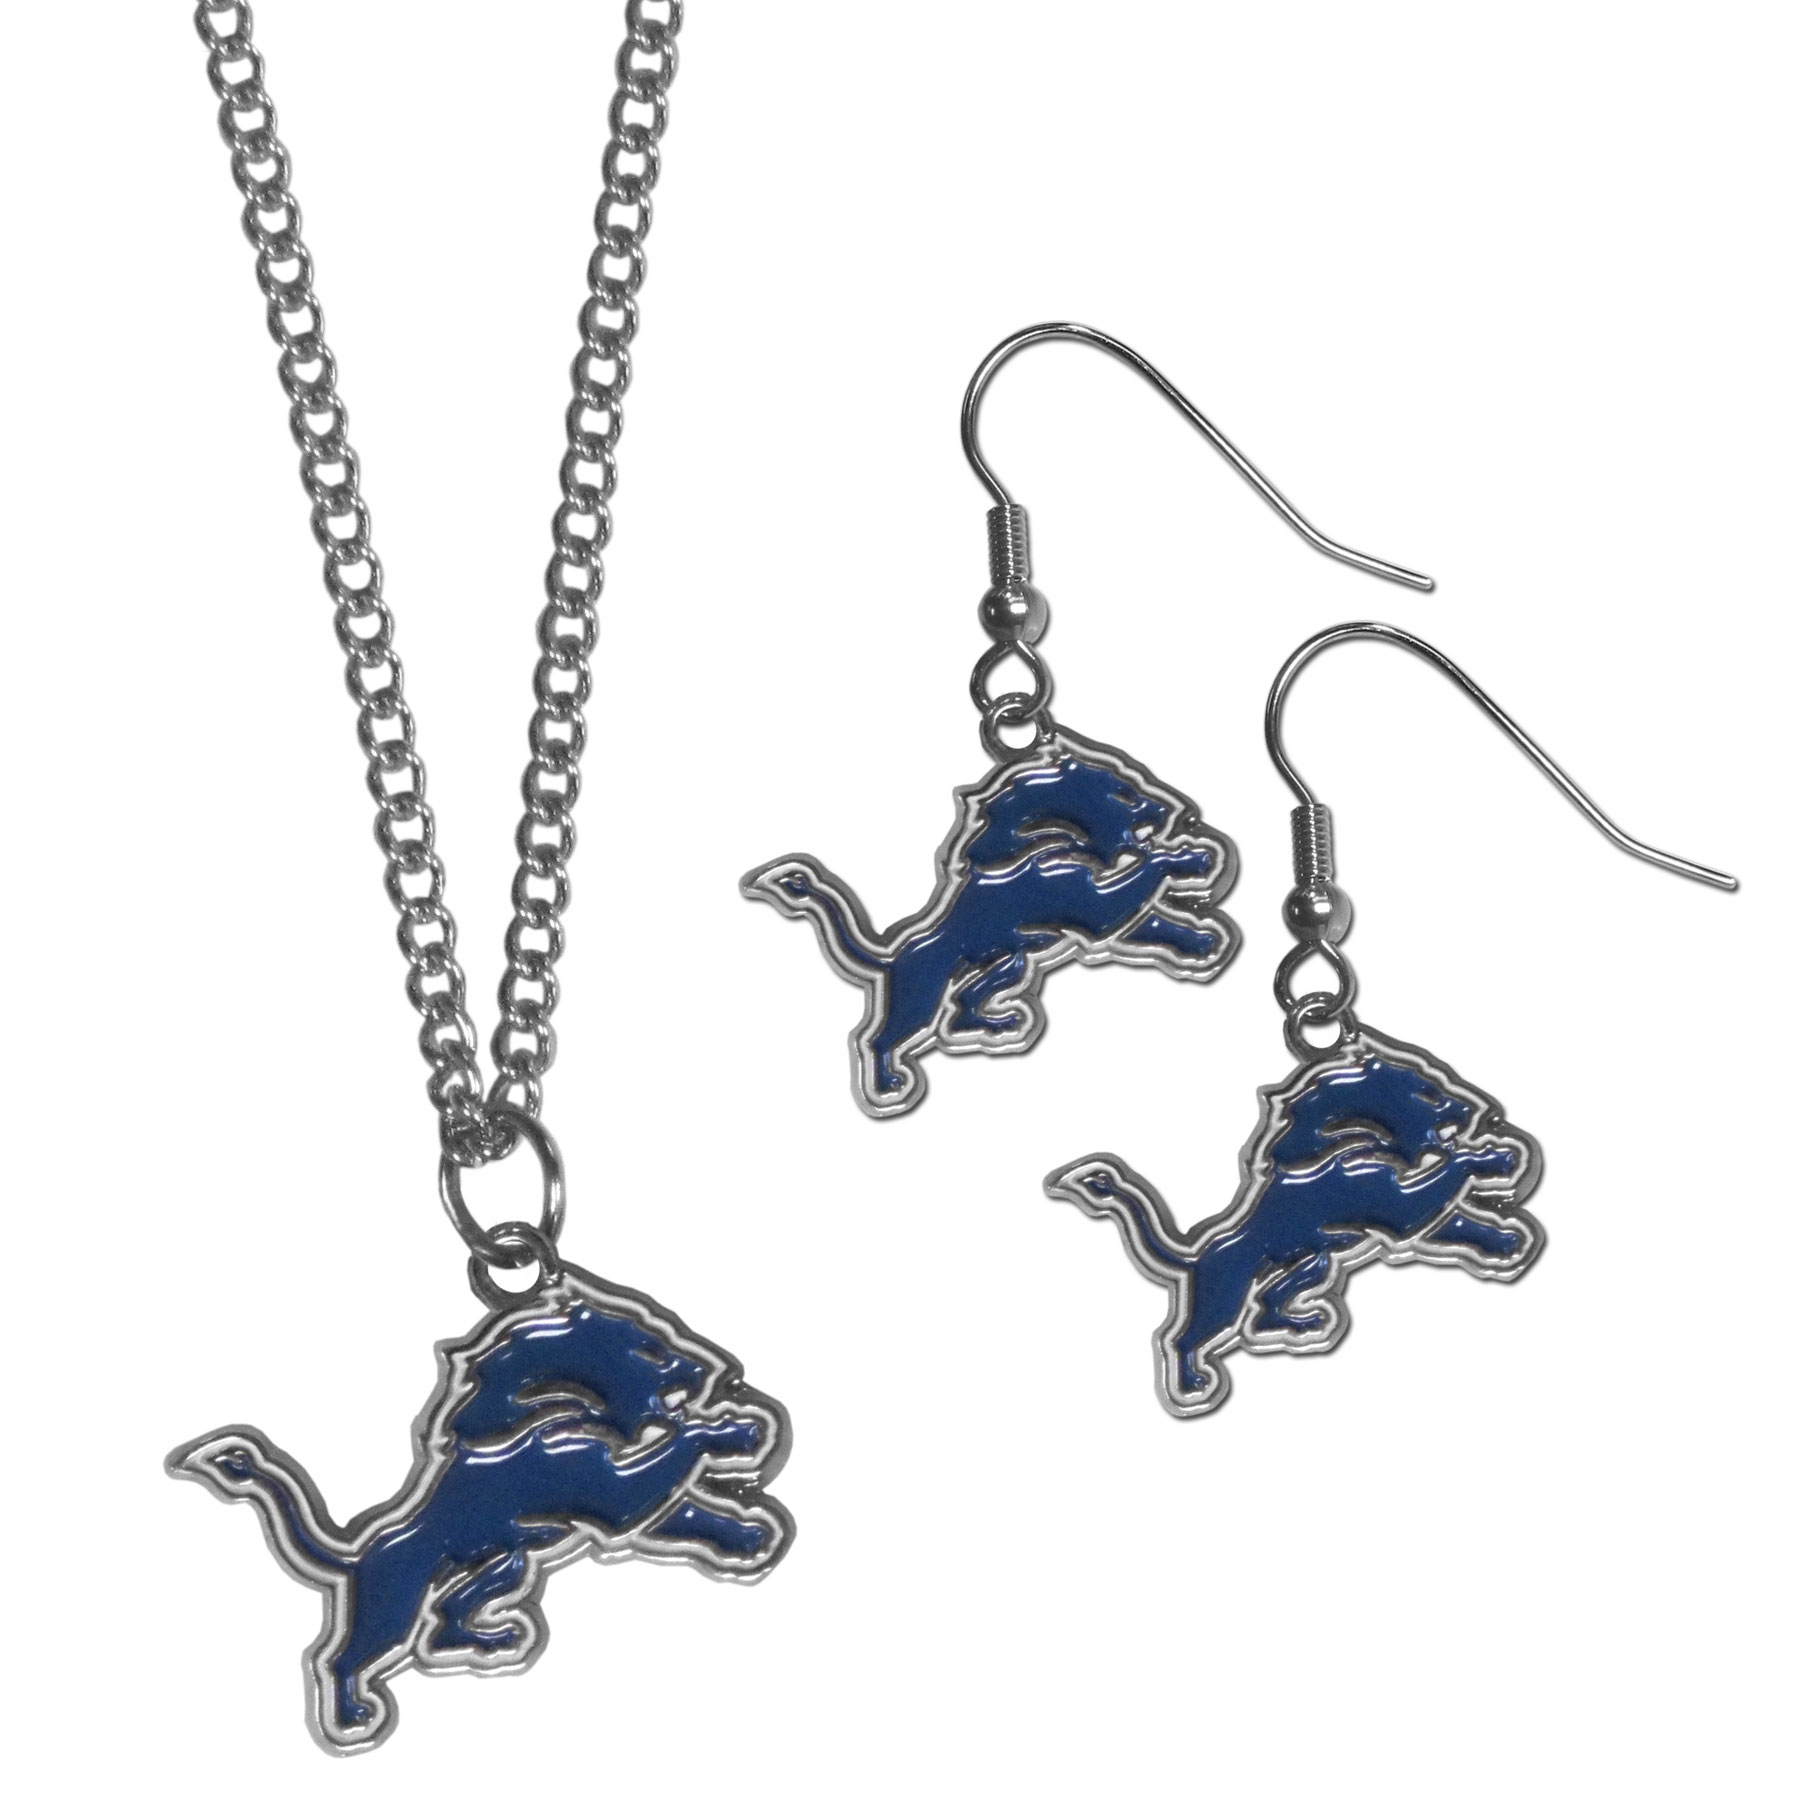 Detroit Lions Dangle Earrings and Chain Necklace Set - This classic jewelry set contains are most popular Detroit Lions dangle earrings and 22 inch chain necklace. The trendy, dangle earrings are lightweight and feature a fully cast metal team charm with enameled team colors. The matching necklace completes this fashion forward combo and is a spirited set that is perfect for game day but nice enough for everyday.